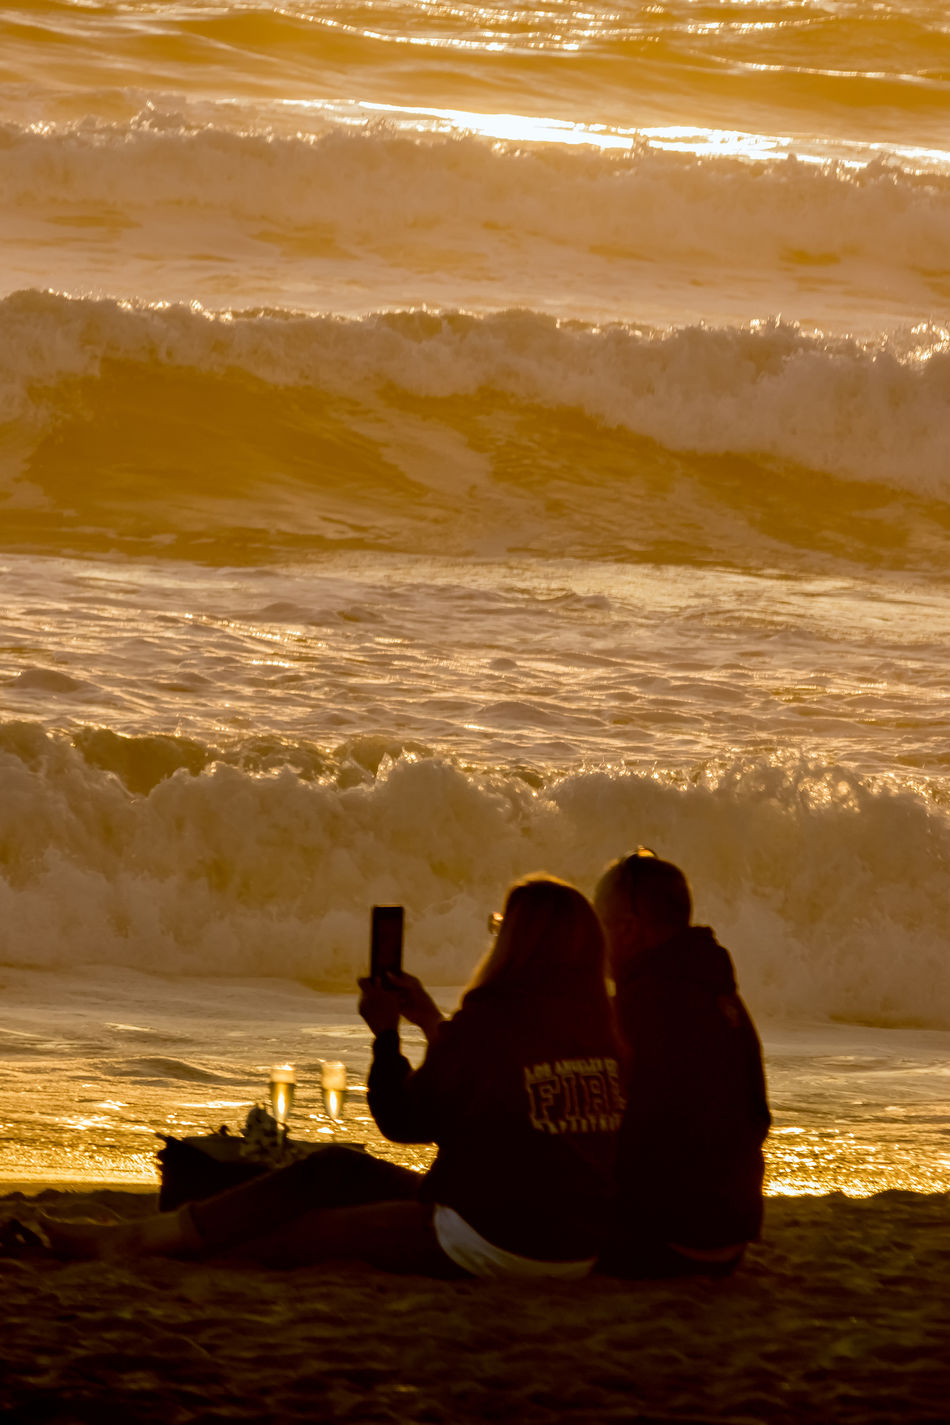 Romance is alive and well on Ventura Beach. Beach Beach Life Beach Photography Beachphotography California California Coast California Dreaming California Love California Sunset Coast Coastal Life Couple Couple - Relationship Golden Golden Hour Romance Romantic Sunset Ventura Waves